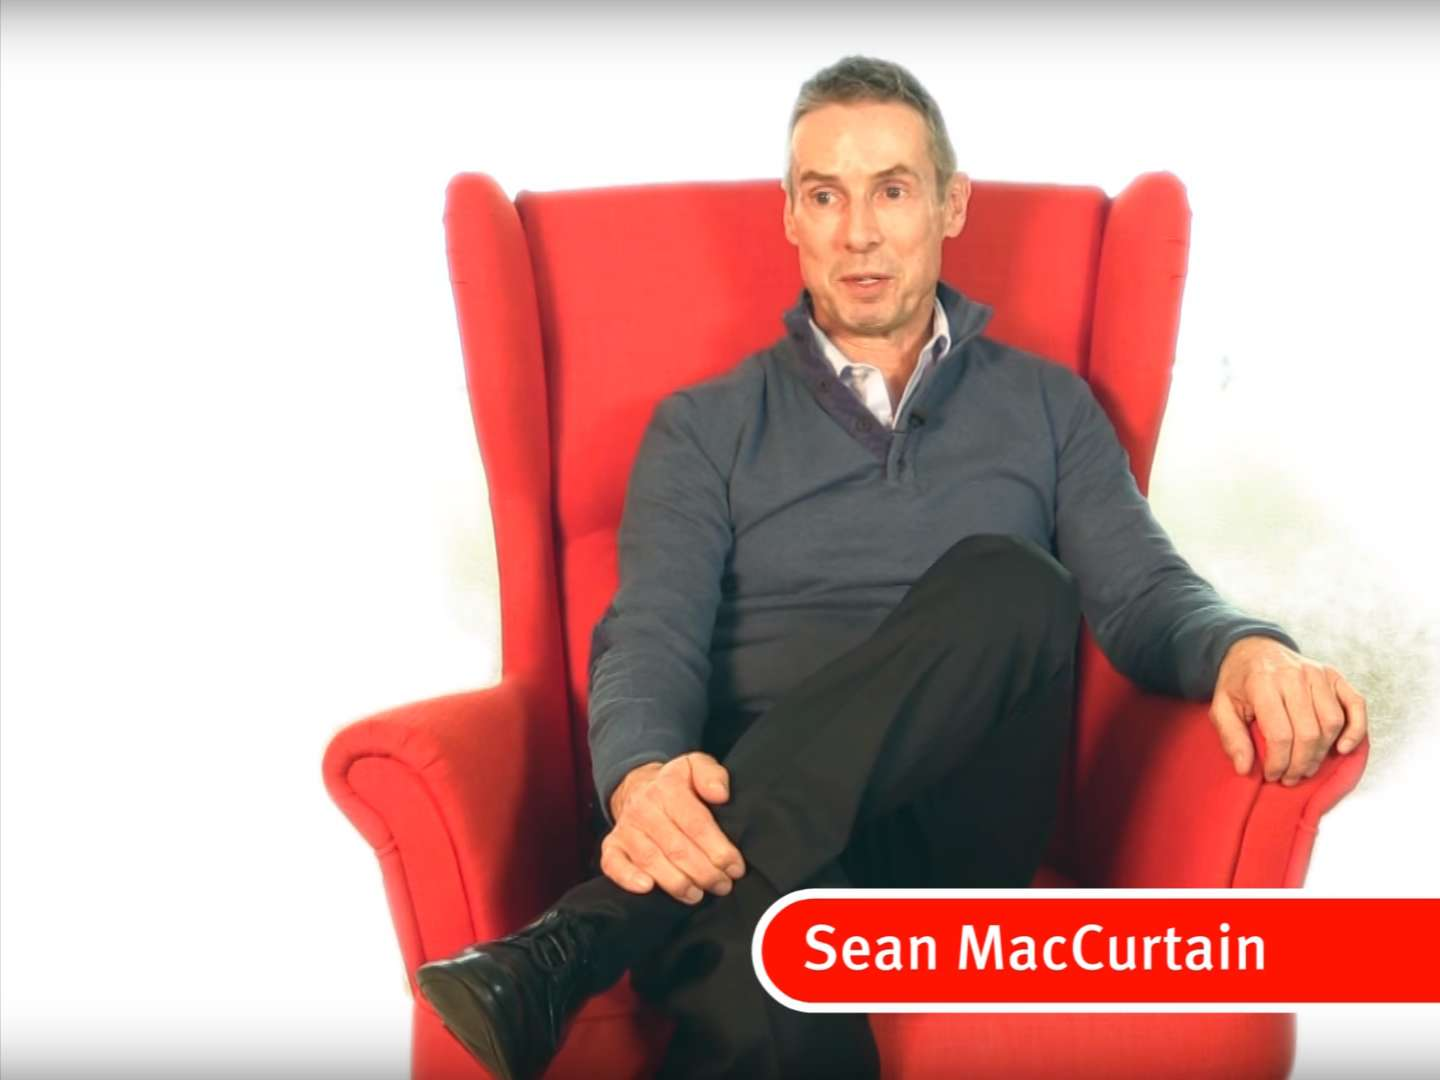 Sean MacCurtain, Secretary of CASCO